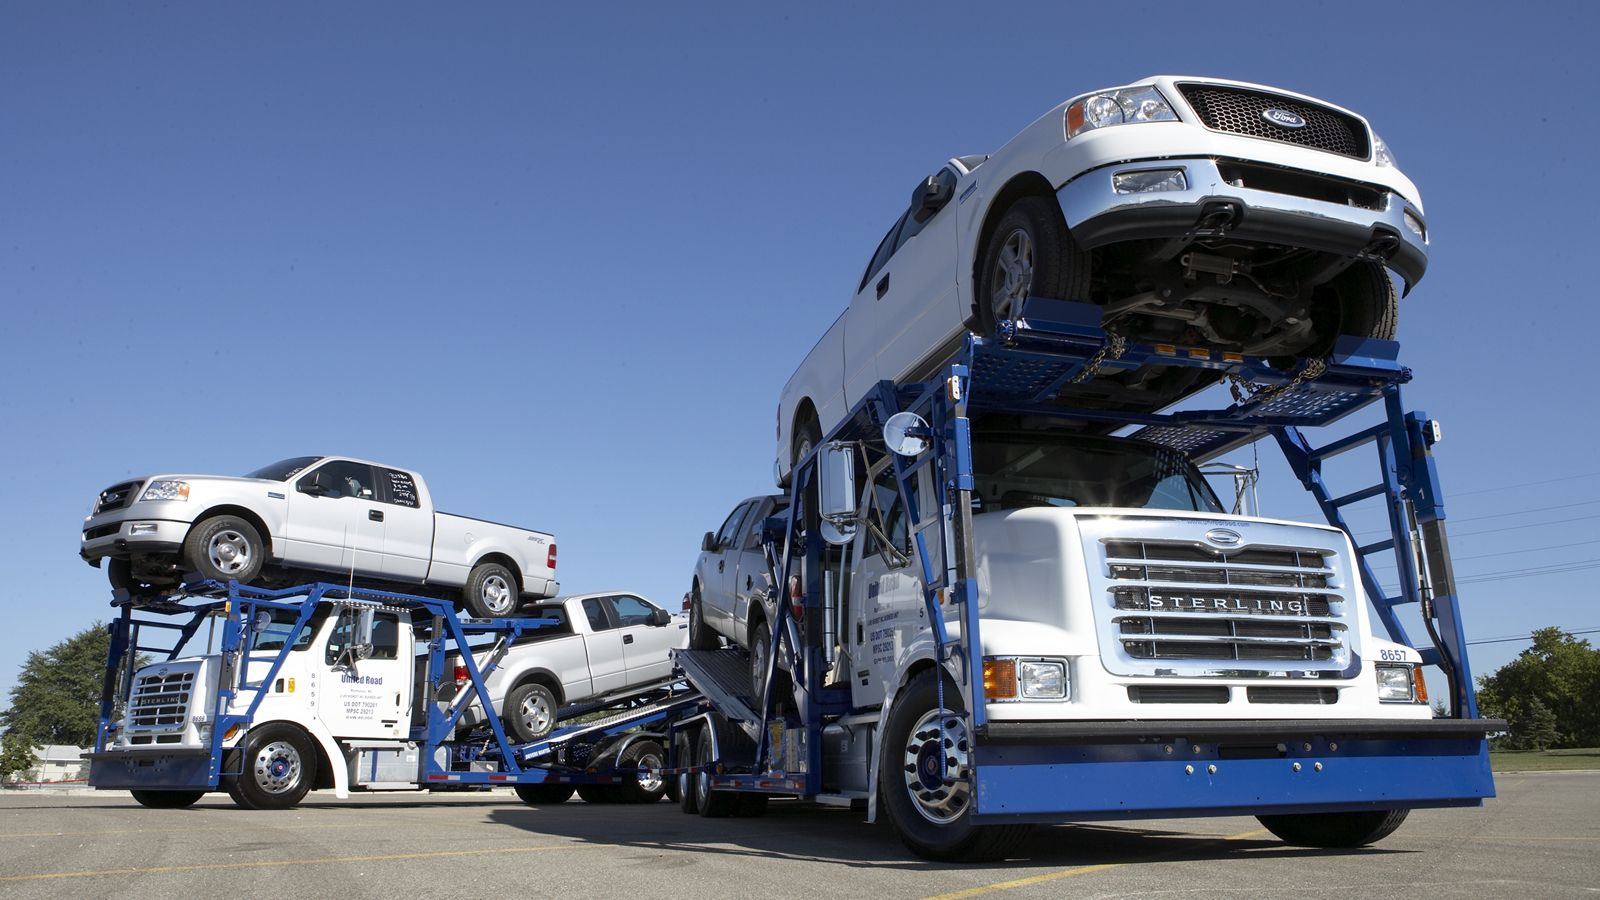 We midsommarservices californiaautoshipping is a